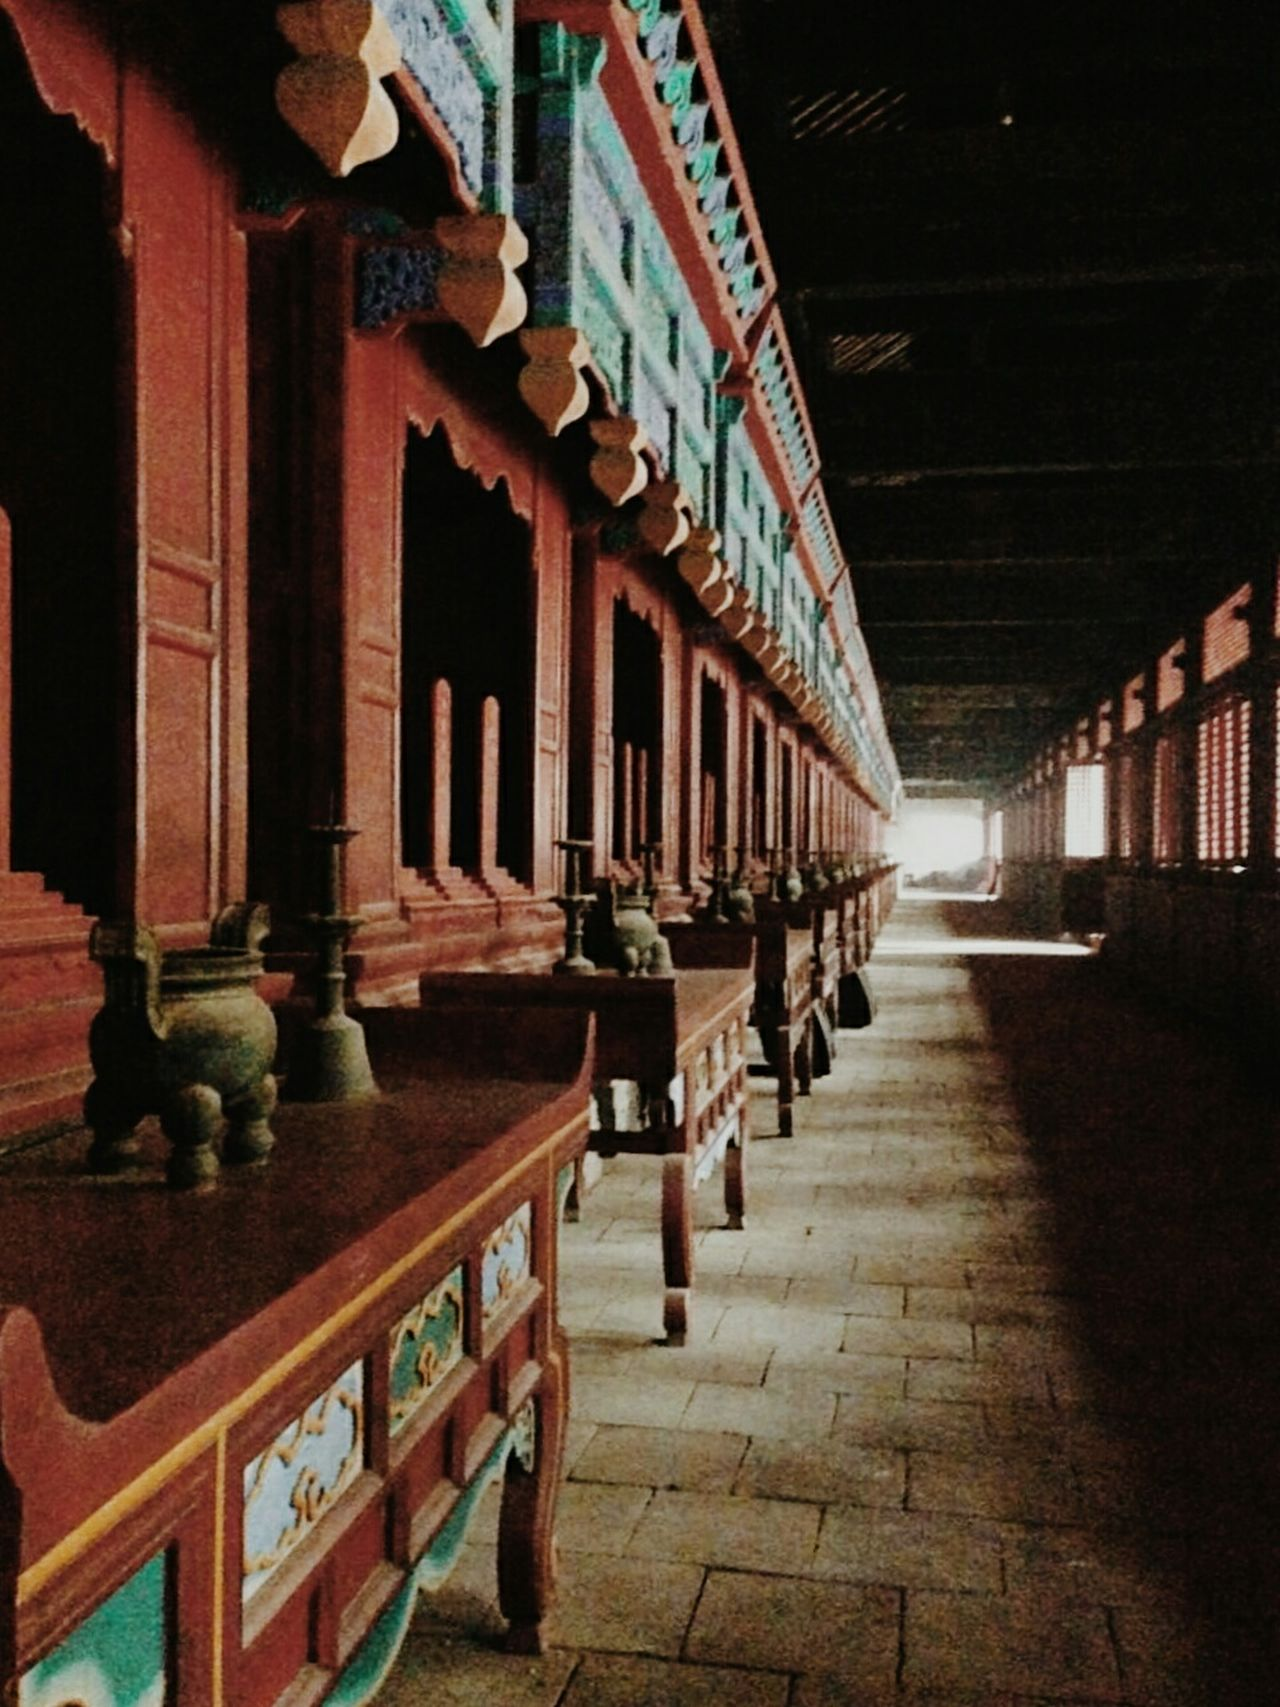 Confucius temple Architectural Column Architecture Travel Destinations Built Structure No People Illuminated Outdoors Day Confucious Confucian School Confucius Temple Confucian Temple China In My Eyes China China. China Dekor China Art China Culture Hanging Choice Red